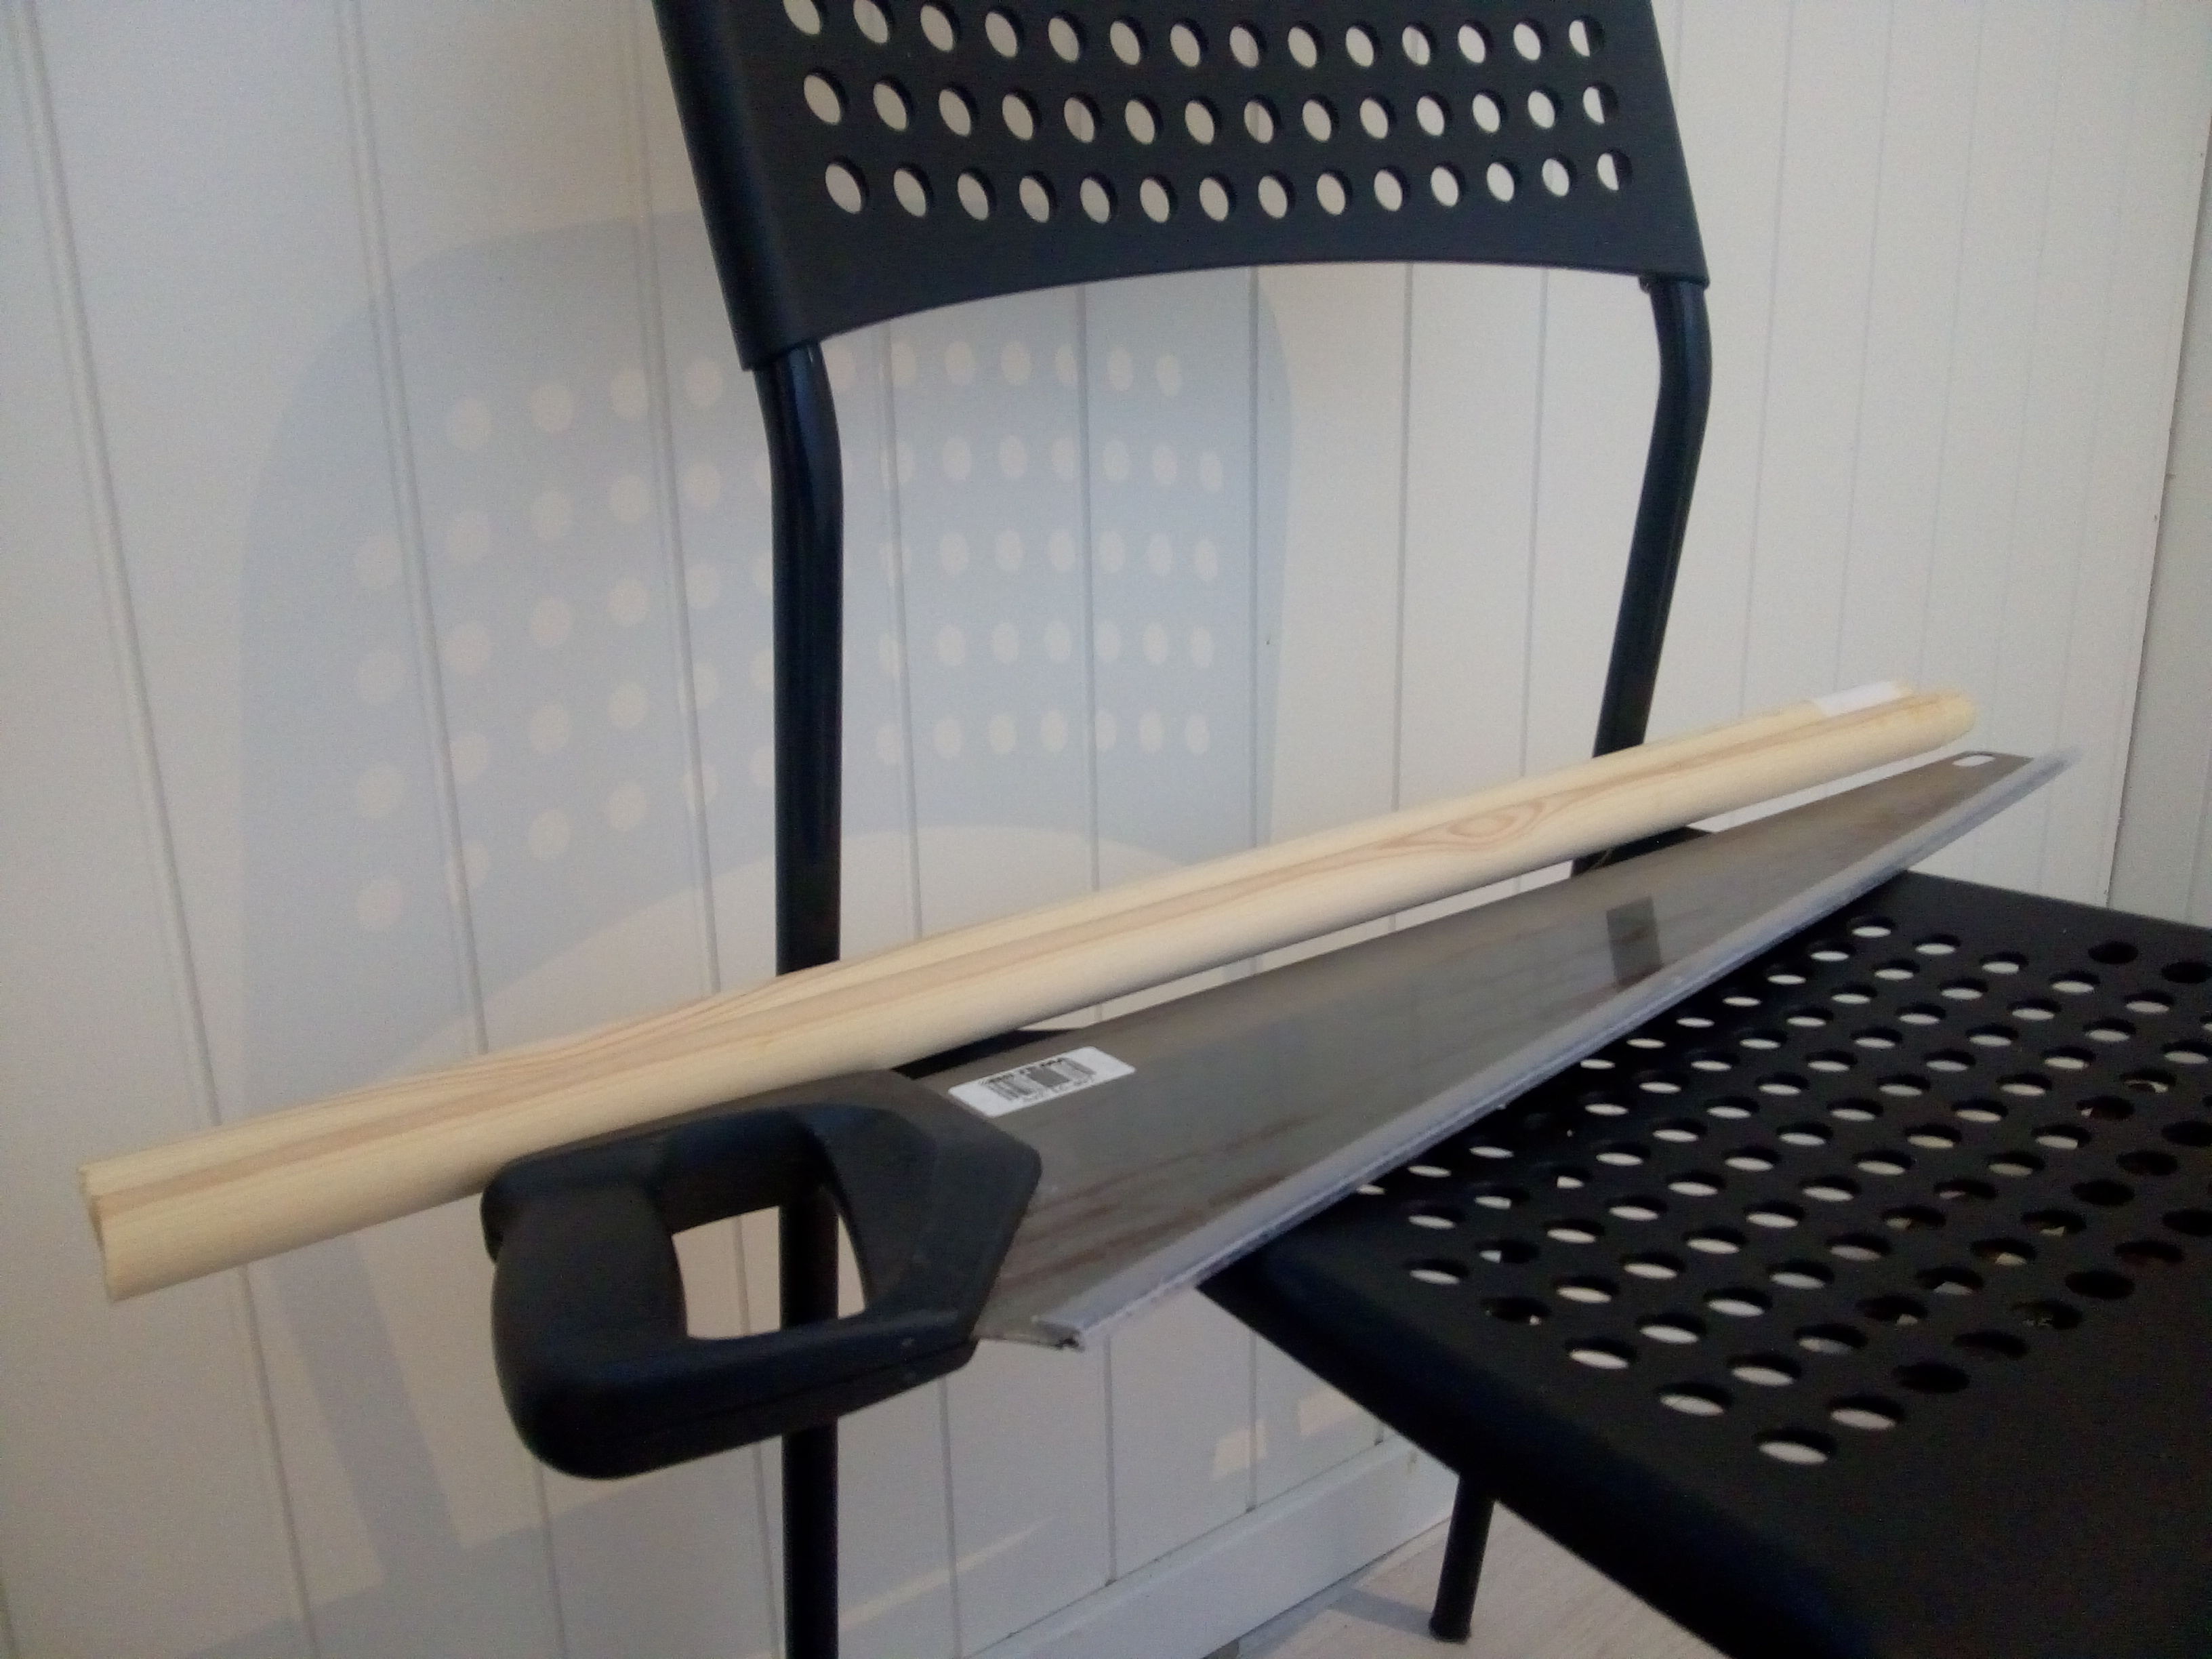 Broom handle cut and saw, on a chair